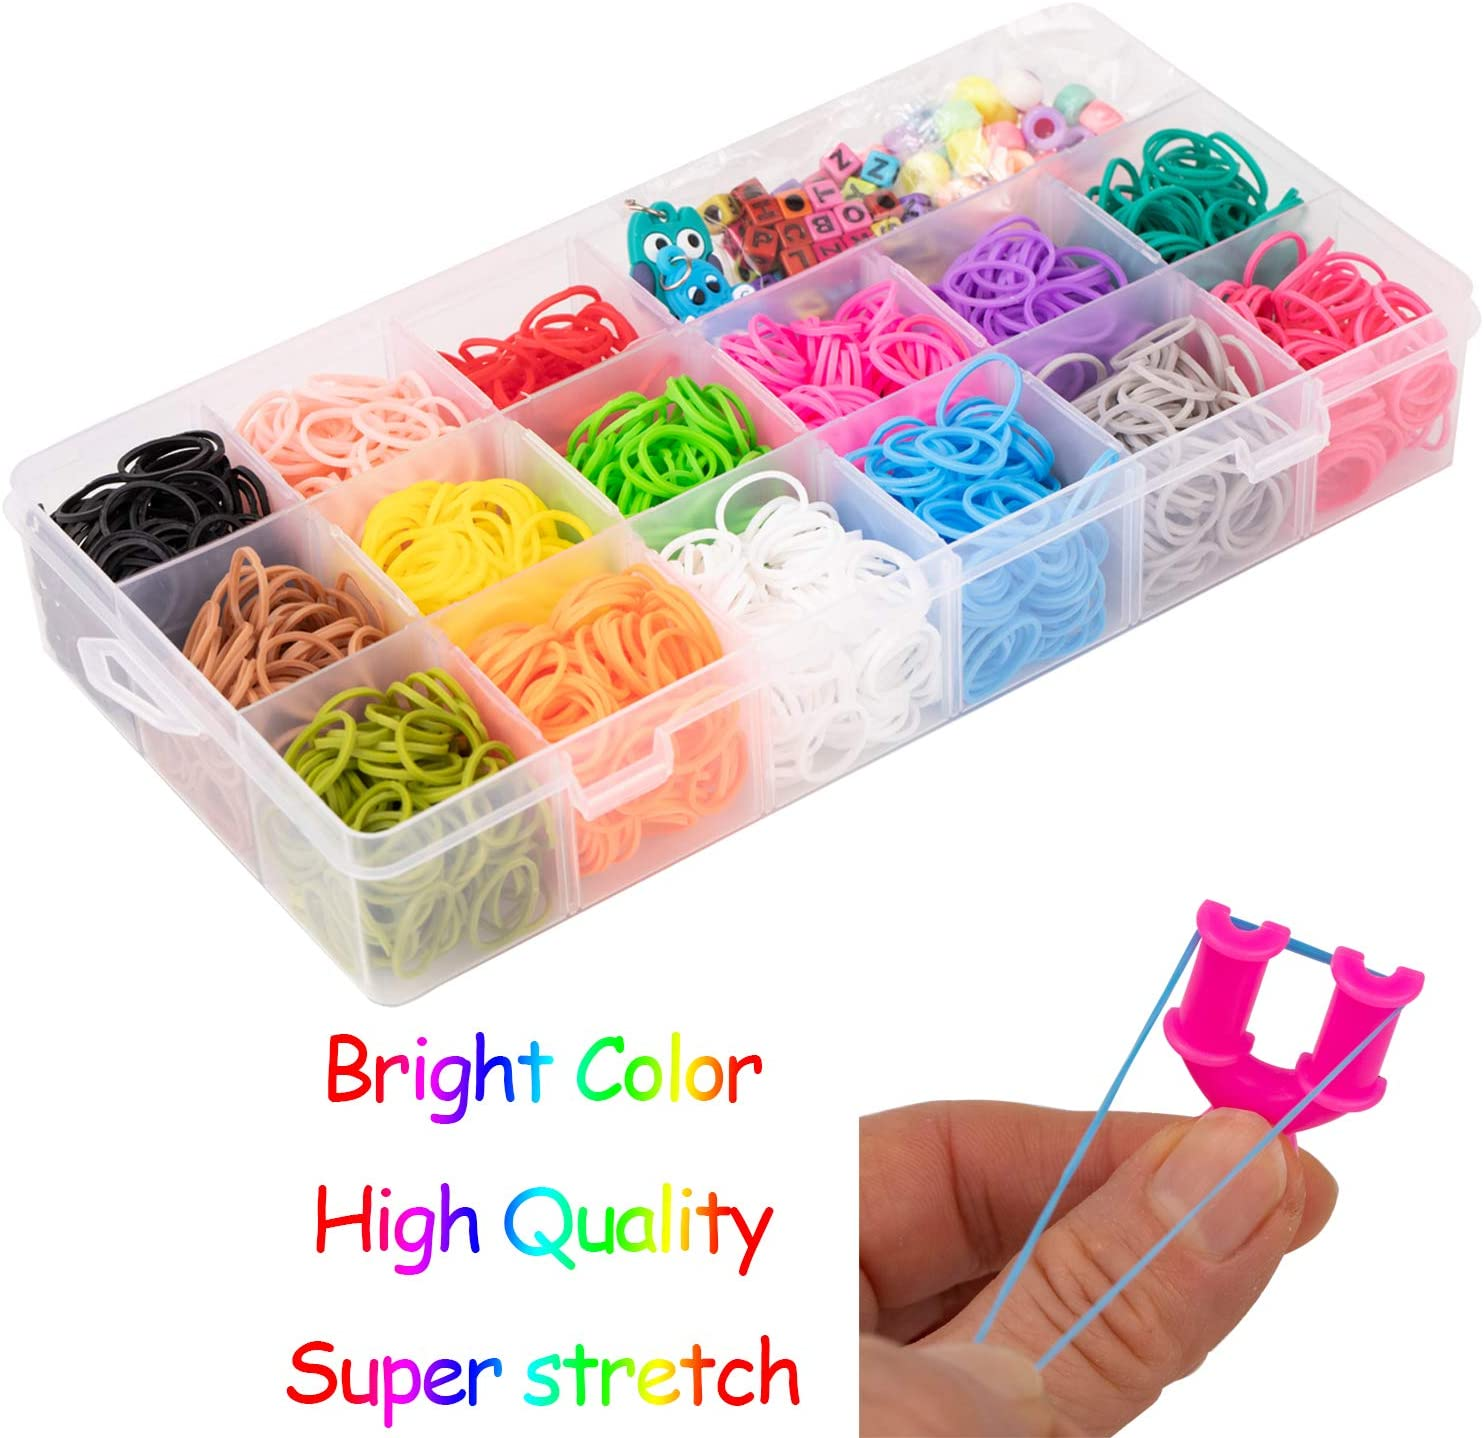 No Loom Board Included. Great Gifts for Girls and Boys Liberry Rainbow Rubber Bands Bracelet Making Kit with Loom Bands Storage Container